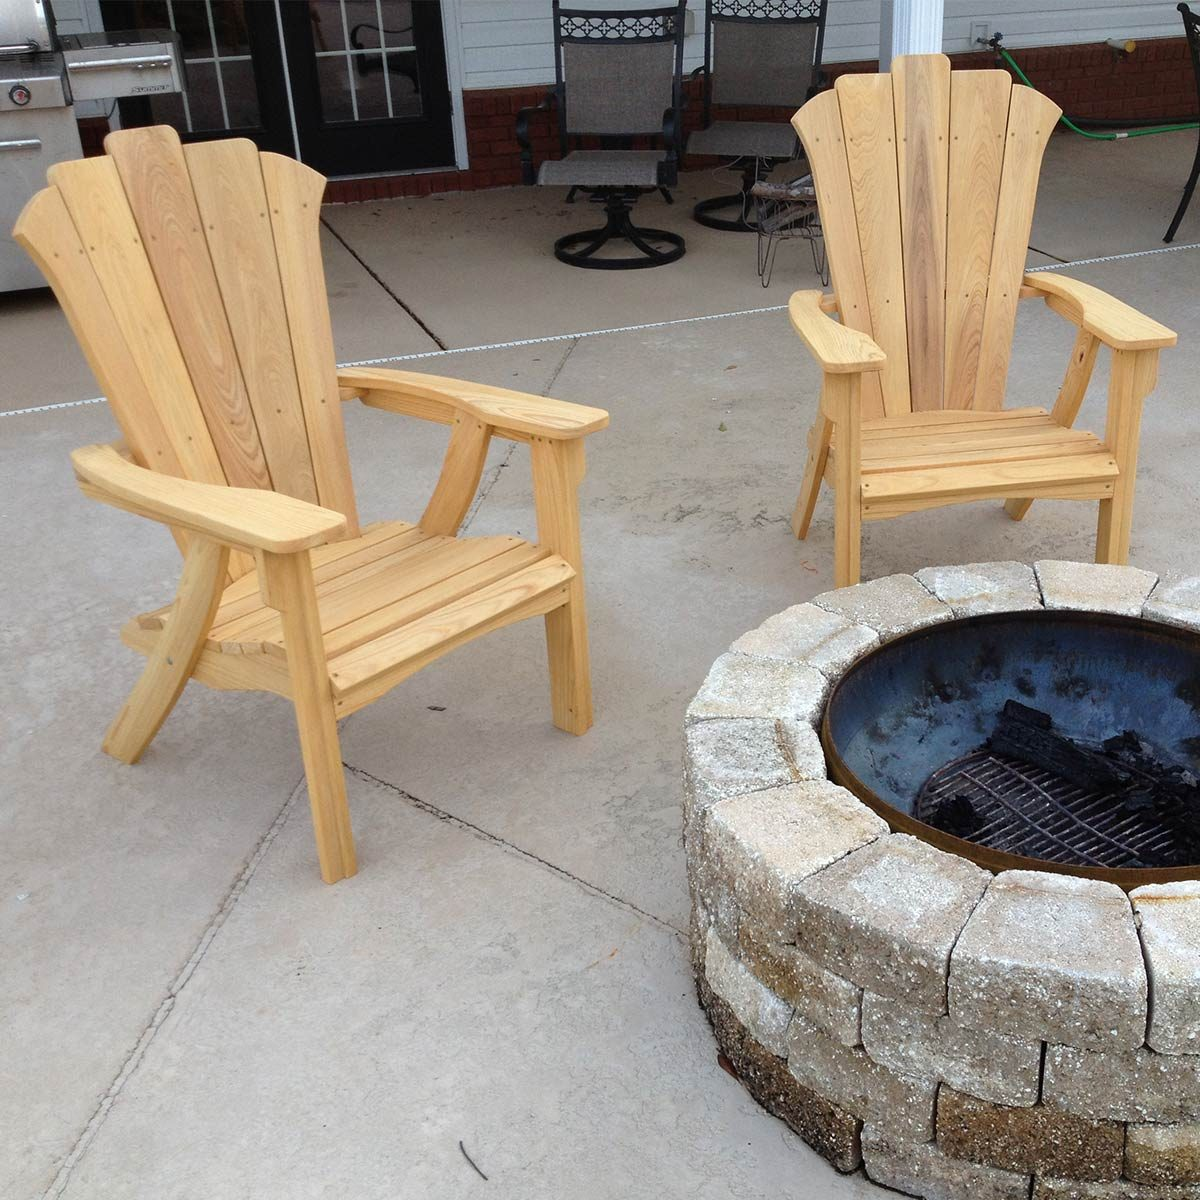 Adirondack Chairs Blueprints 16 Diy Reader Projects From The Family Handyman